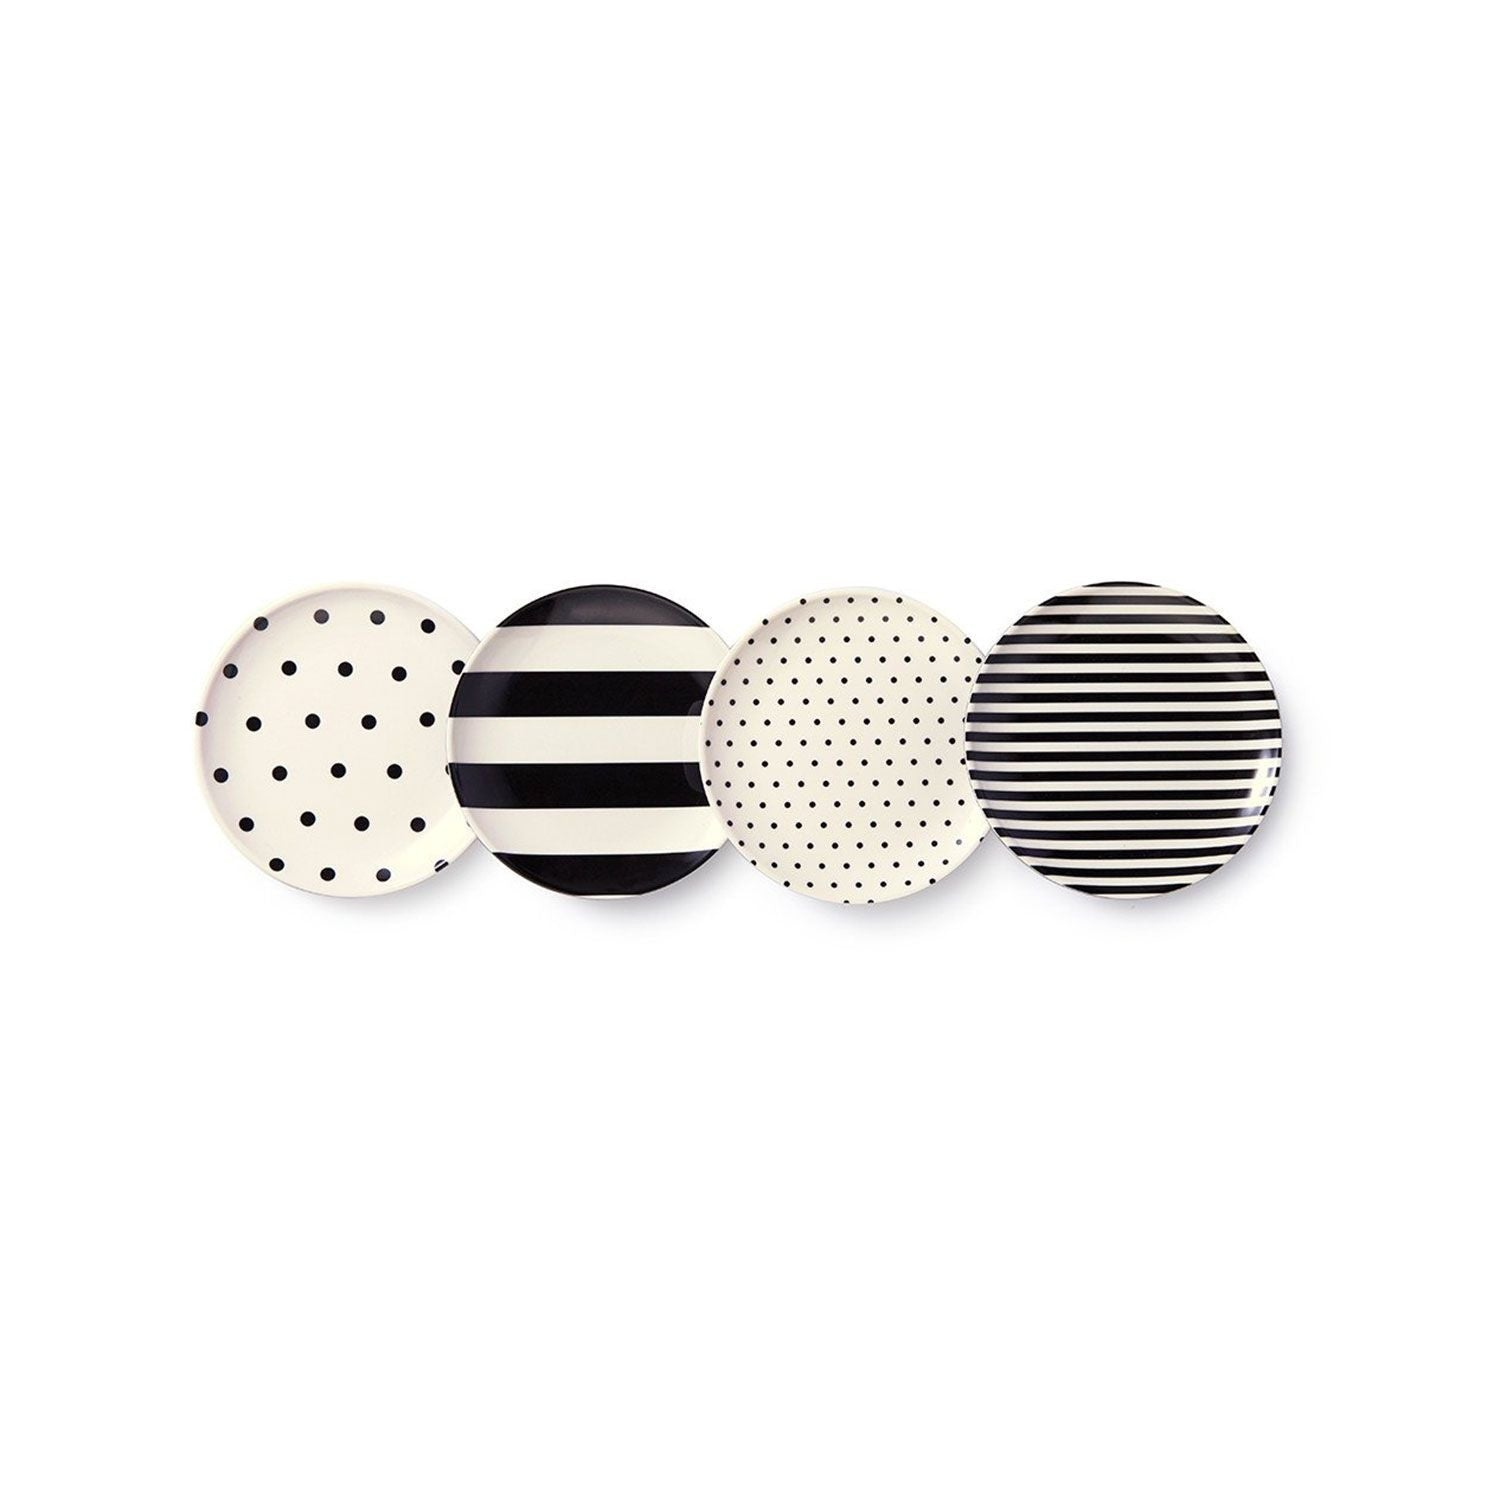 Kate Spade Black & White Coasters - Set of 4